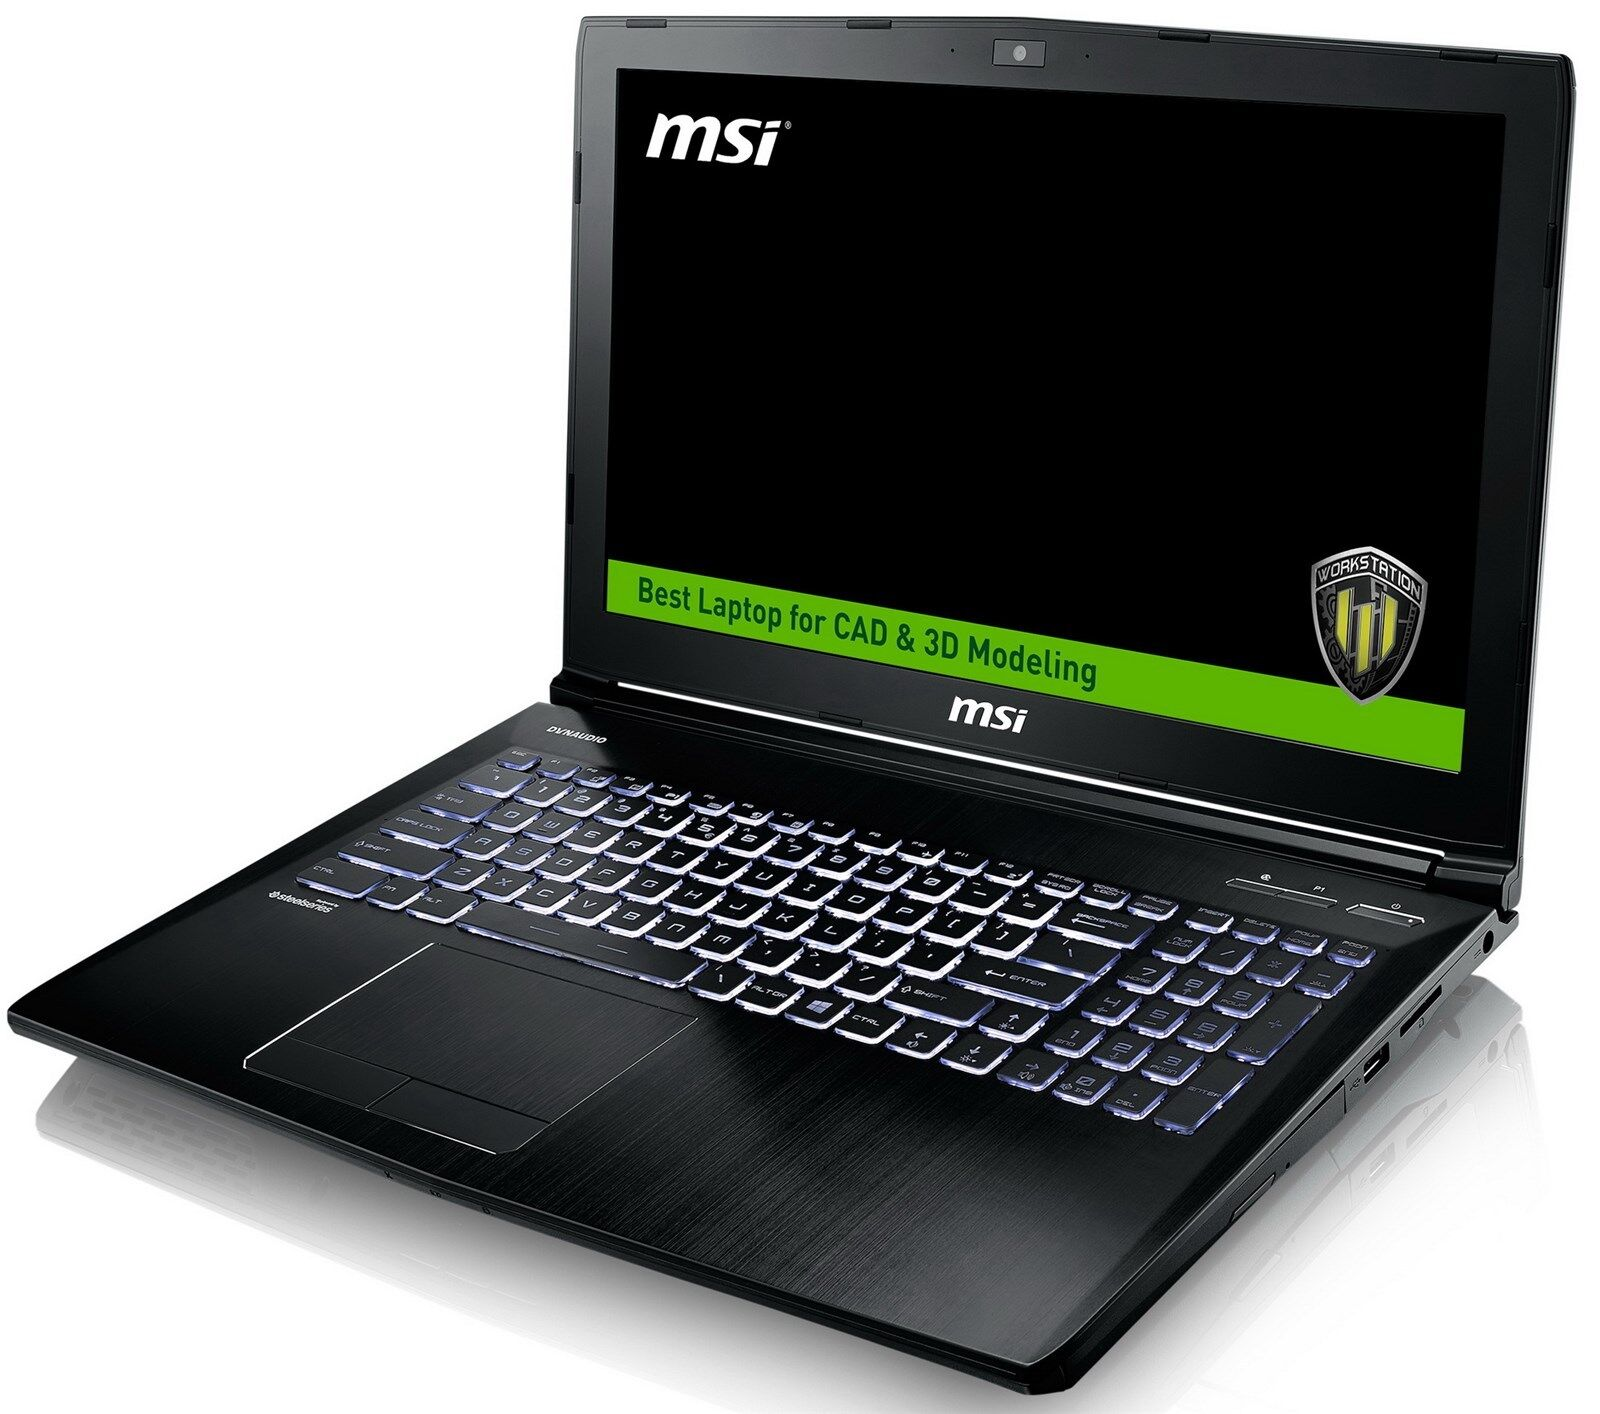 "MSI WE62 15.6"" FHD Core i7-7700HQ Quadro M2200/M1200 CAD&3D Modeling Workstation"